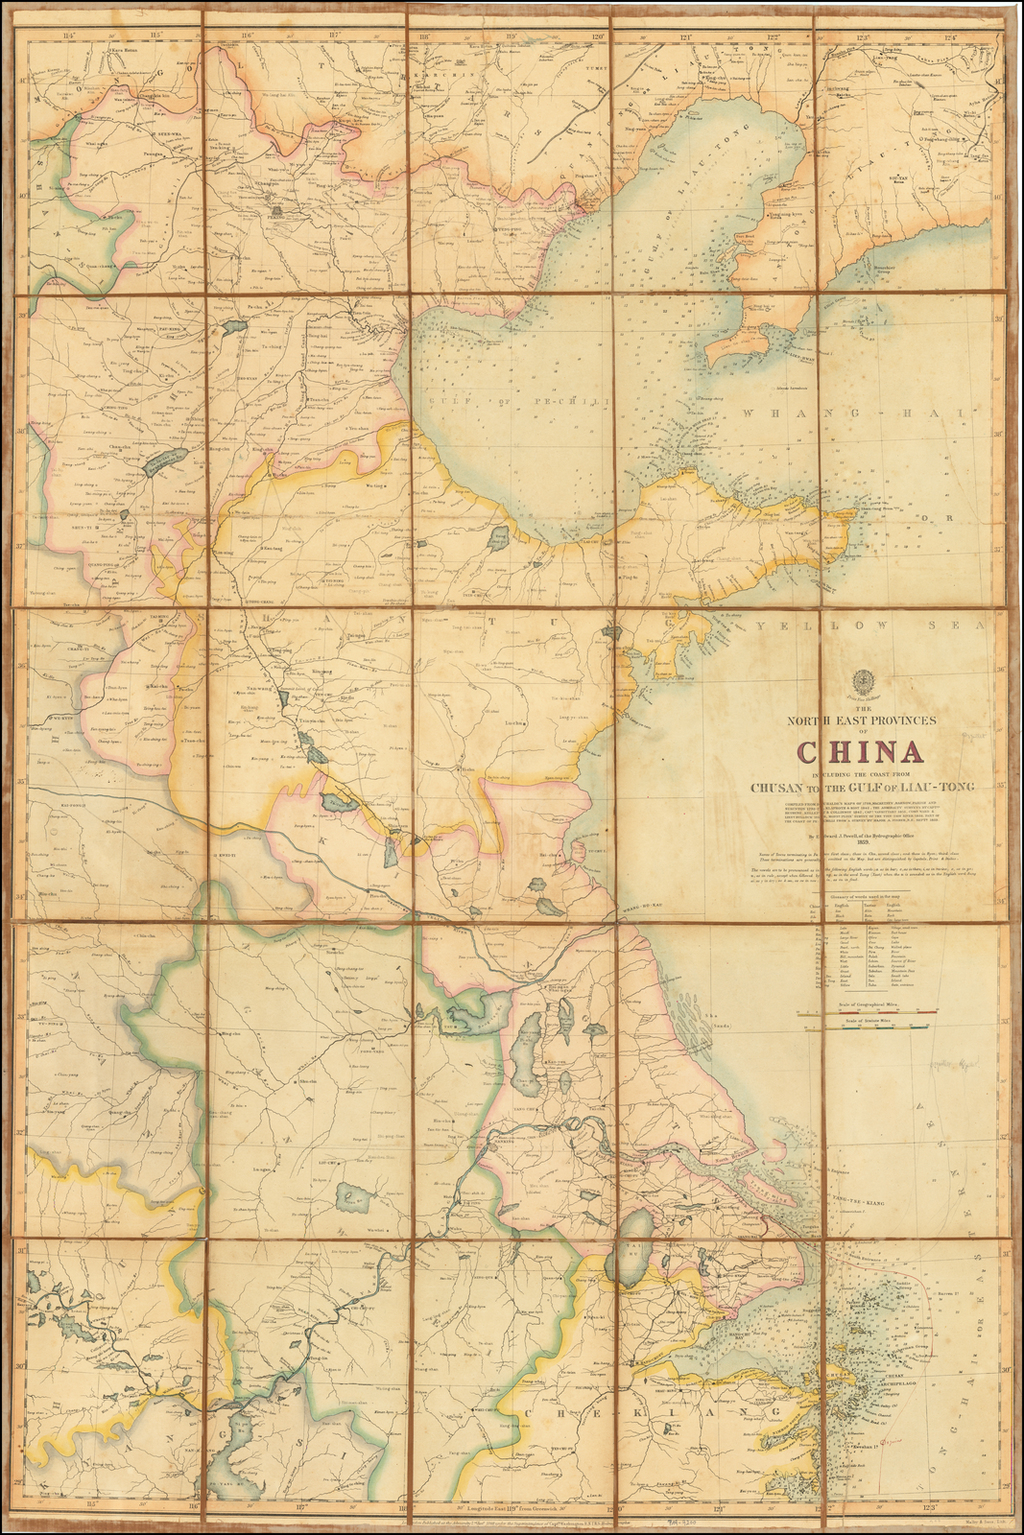 [Second Opium War Map]  The North East Provinces of China Including The Coast From Chusan to the Gulf of Liau-Tong Compiled From Du Halde's Maps of 1738, McCartney, Barrow, Parish and Staunton 1793-7, Klaproth & Biot 1842, The Admiralty Survys By Captns. Bethune, Kellett & Collinson 1842, Capn. Vansittart 1855, Comr. Ward & Lieut. Bullock 1858, Monsr. Ploix' Survey of The Tien-Tsin River 1858. Part of the Coat of Pe-Chilli From A Survey by Major A Fisher, R.E. Septr. 1859 By British Admiralty